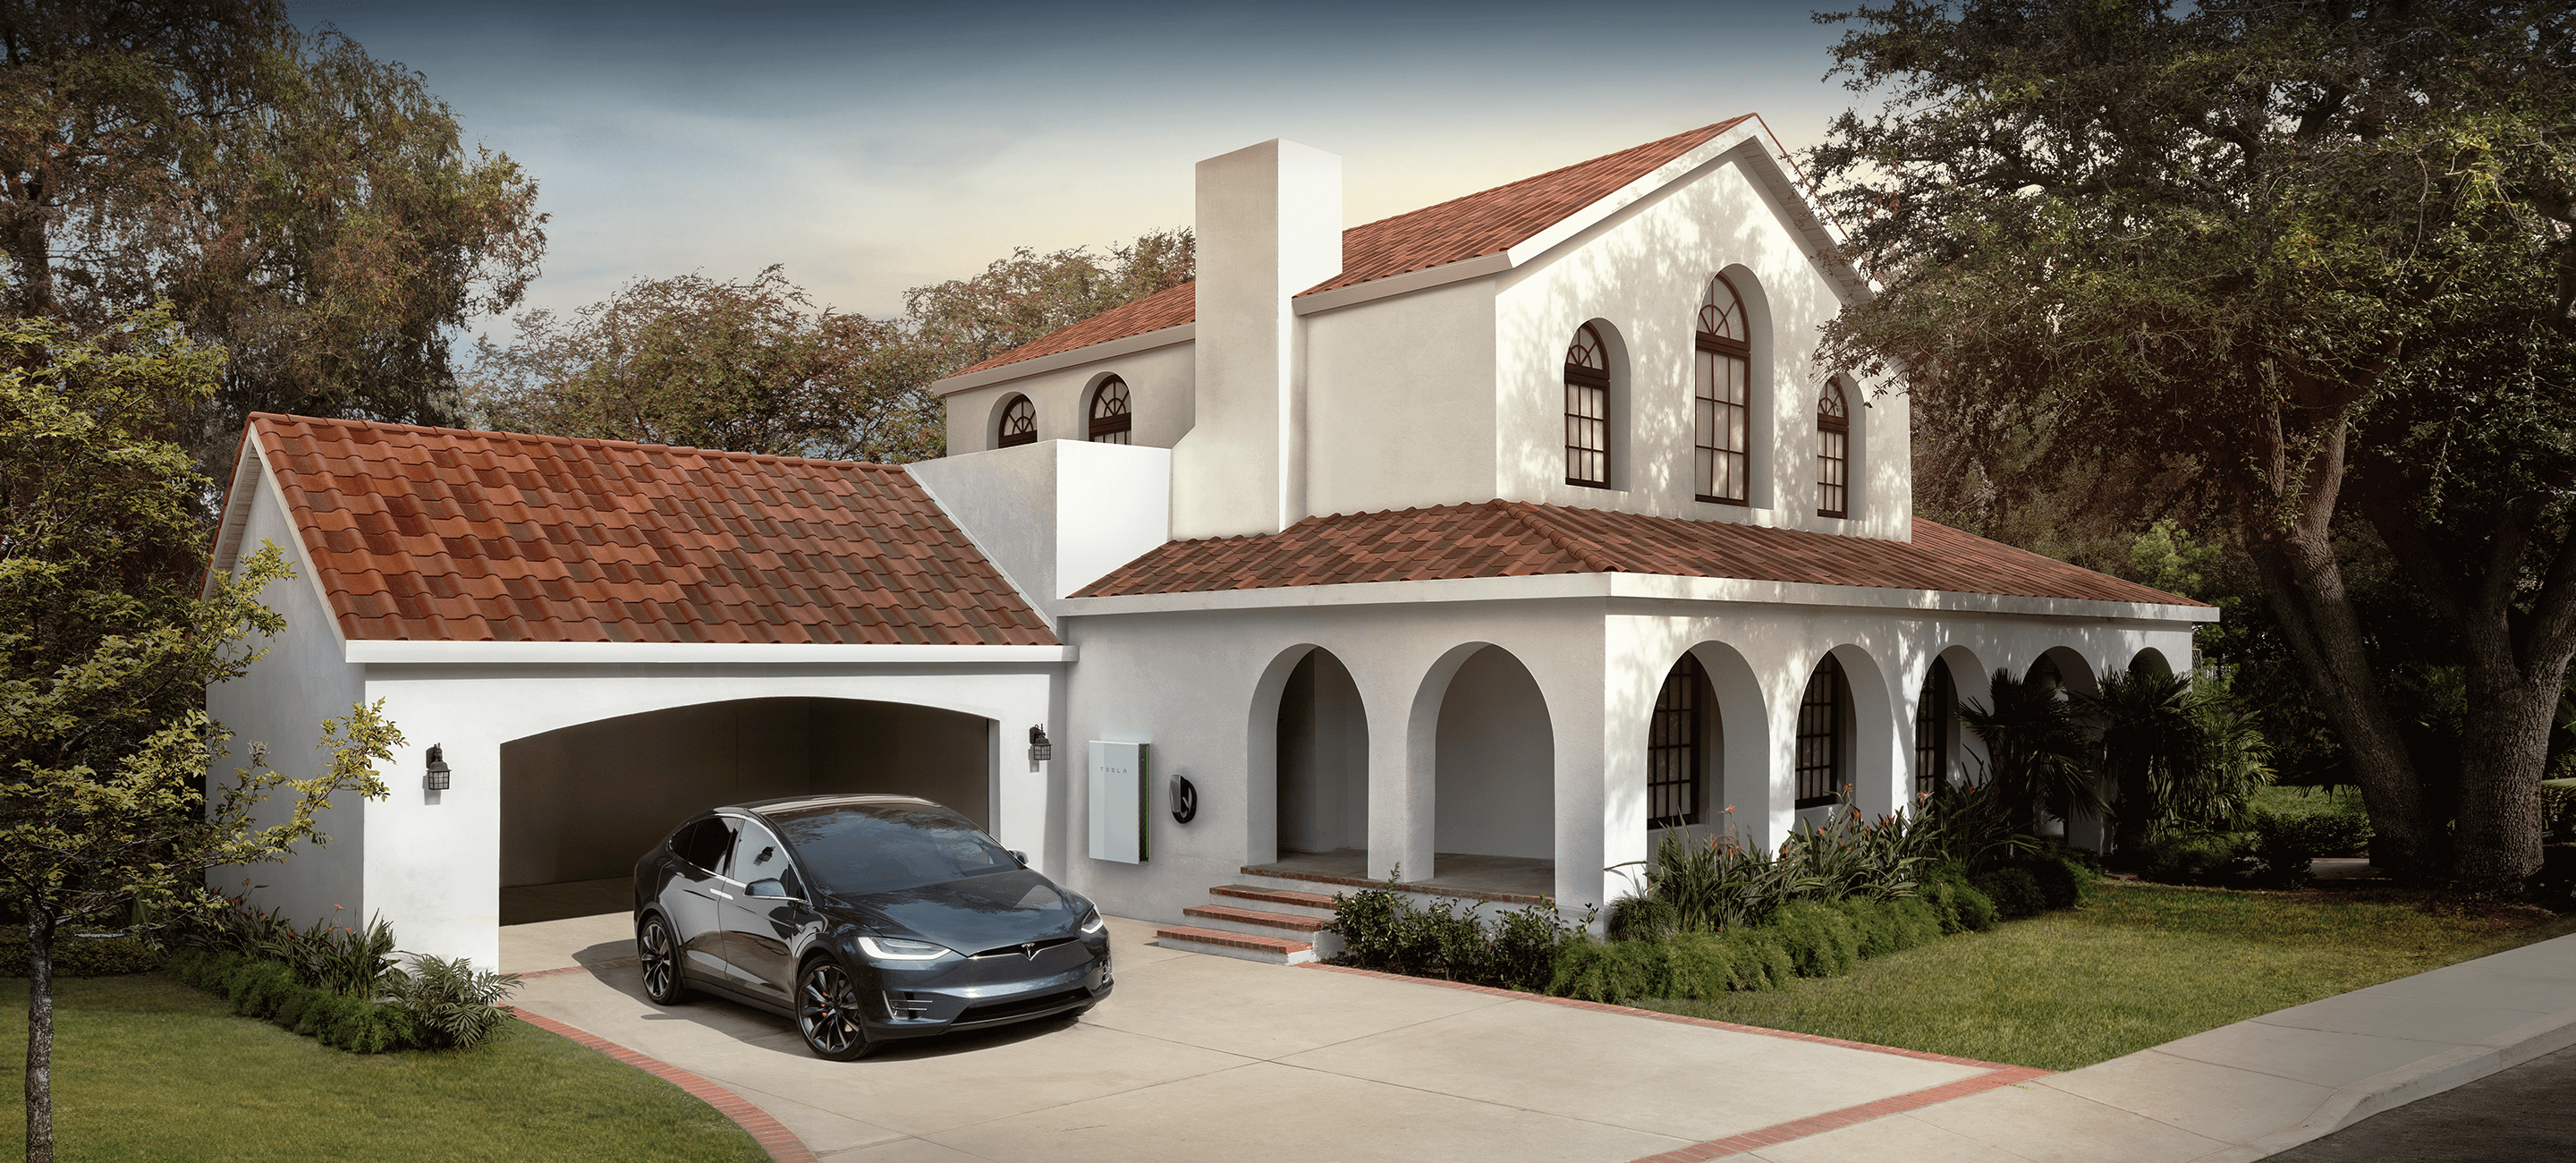 Tesla S Amazing Solar Roof Tiles Look Good Are Much Stronger Than Regular Tiles And Produce Energy Nbnbnbnb An Solar Roof Tesla Solar Roof Solar Shingles